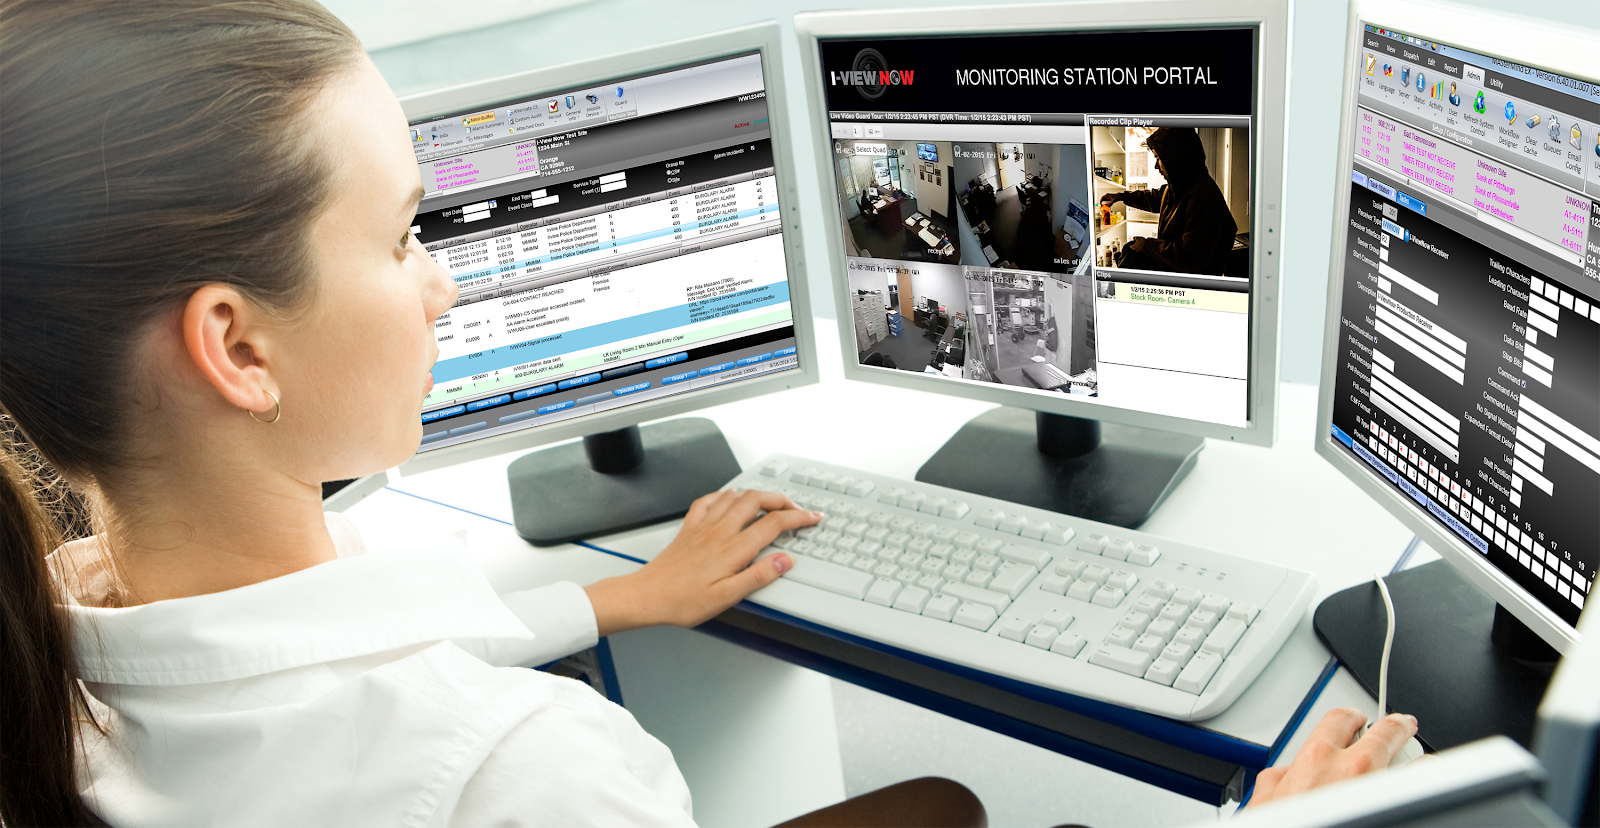 Video Verification I-View Now Mastermind operator